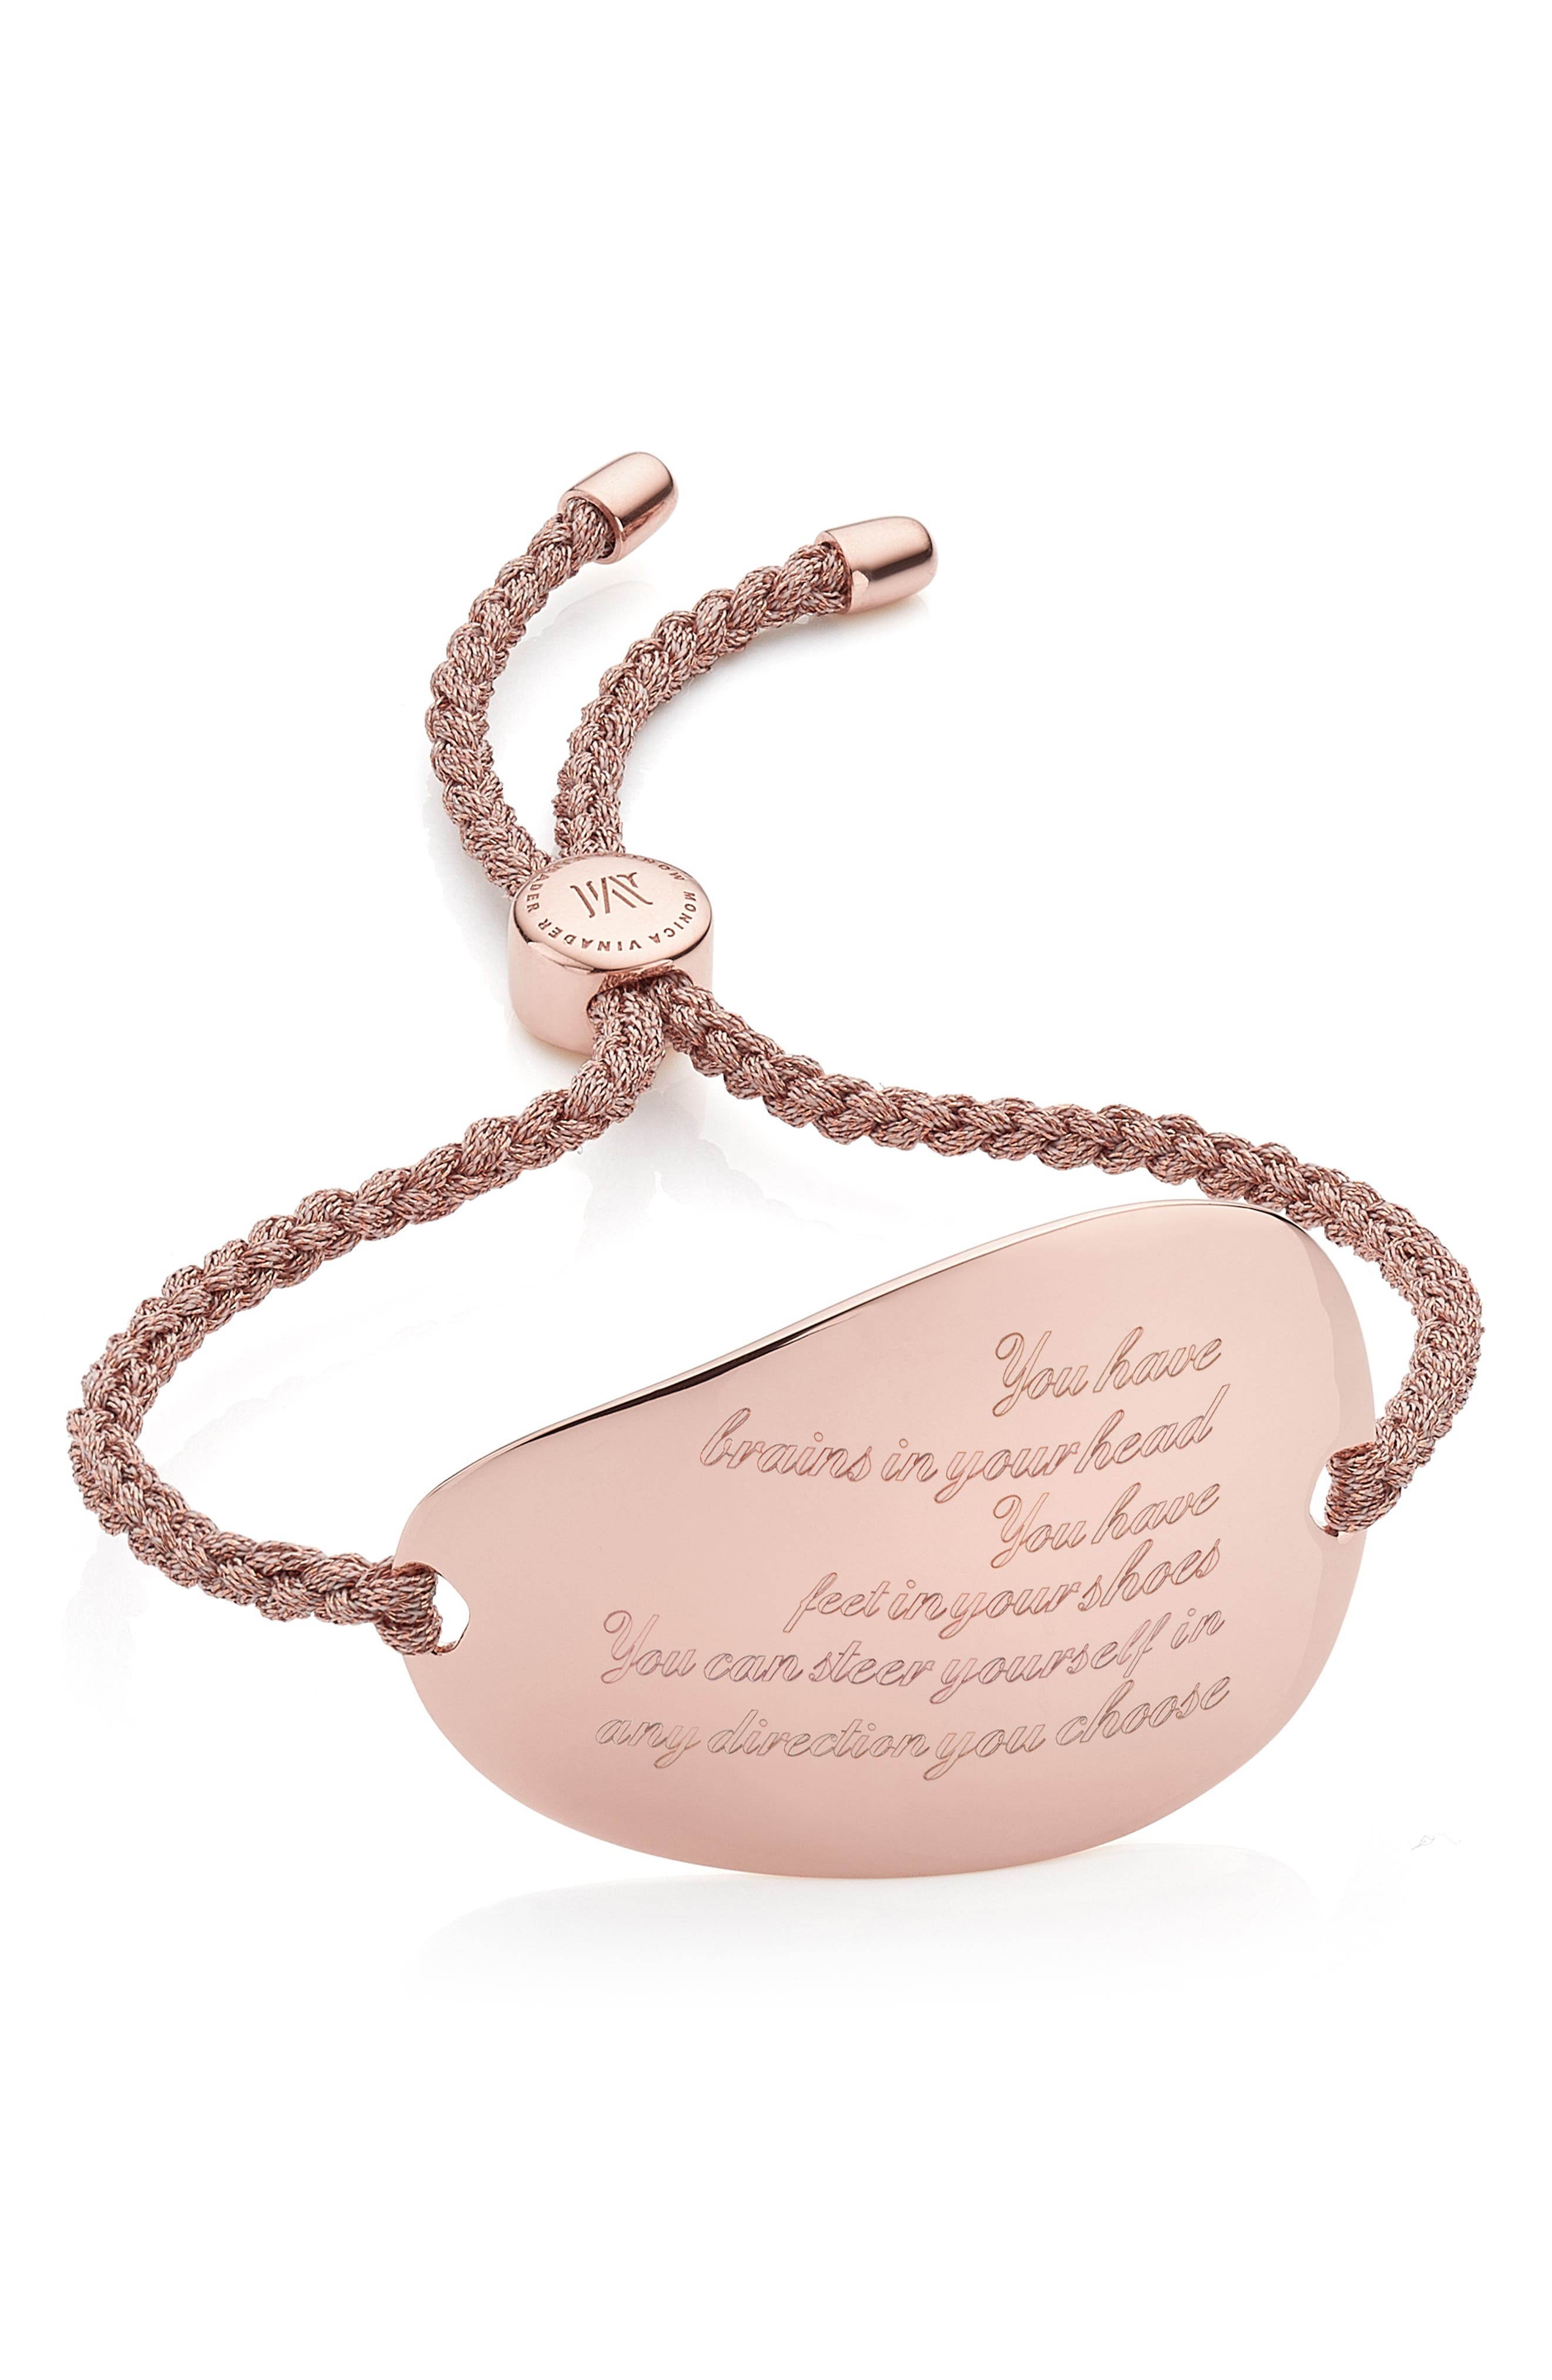 Engravable Nura Friendship Bracelet,                             Alternate thumbnail 6, color,                             ROSE GOLD